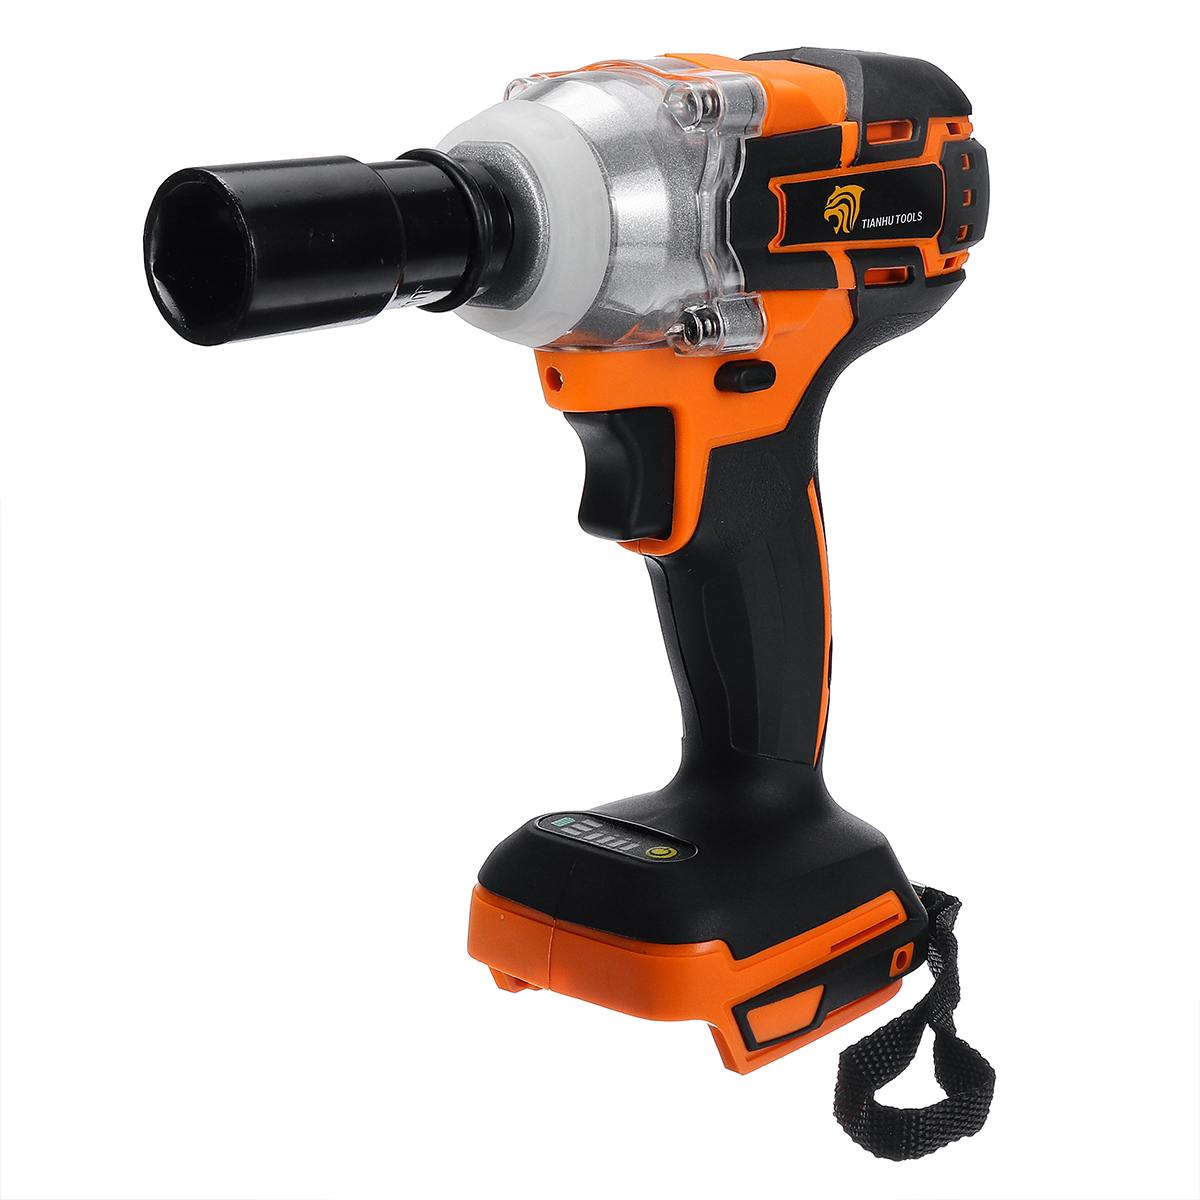 18V 520 N.m Electric Brushless Cordless Impact Wrench Rechargeable Hand Drill Power Tools 4000rpm For Makita Battery